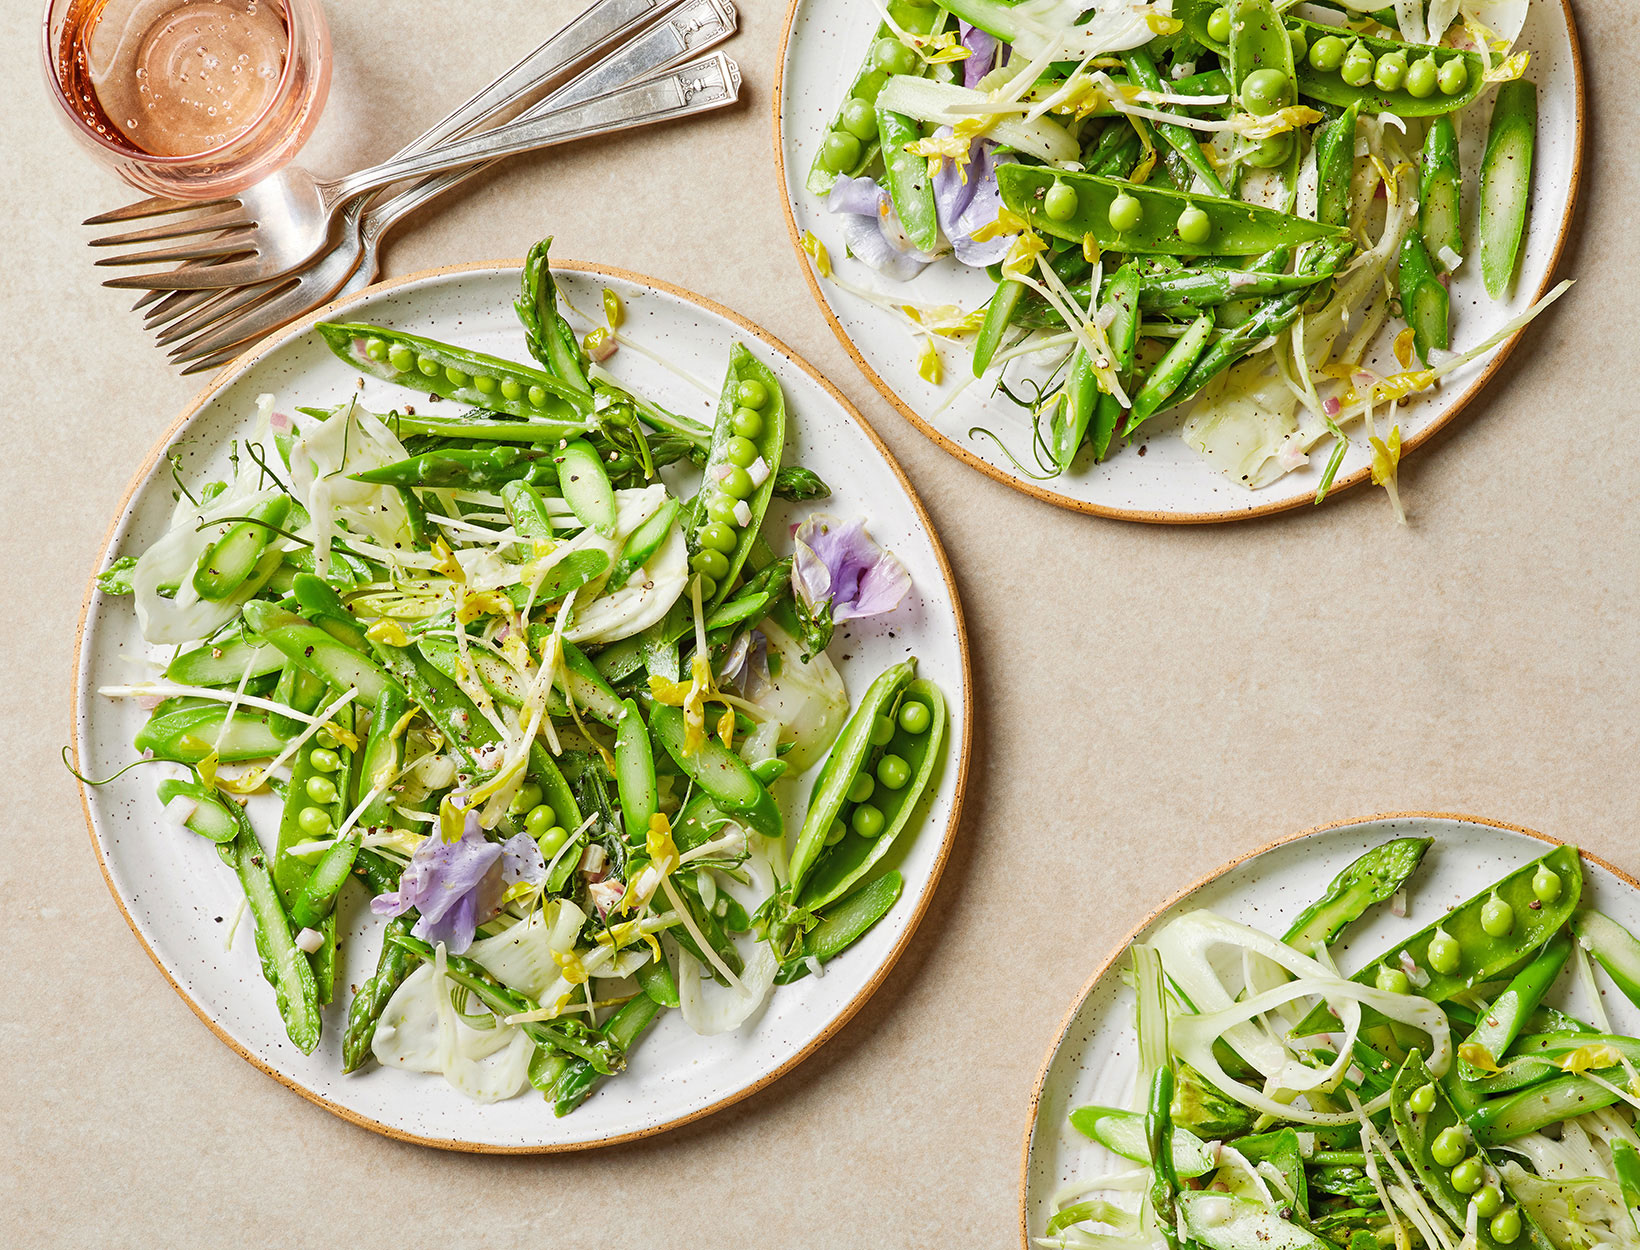 Snap Pea and Asparagus Salad with Horseradish Dressing